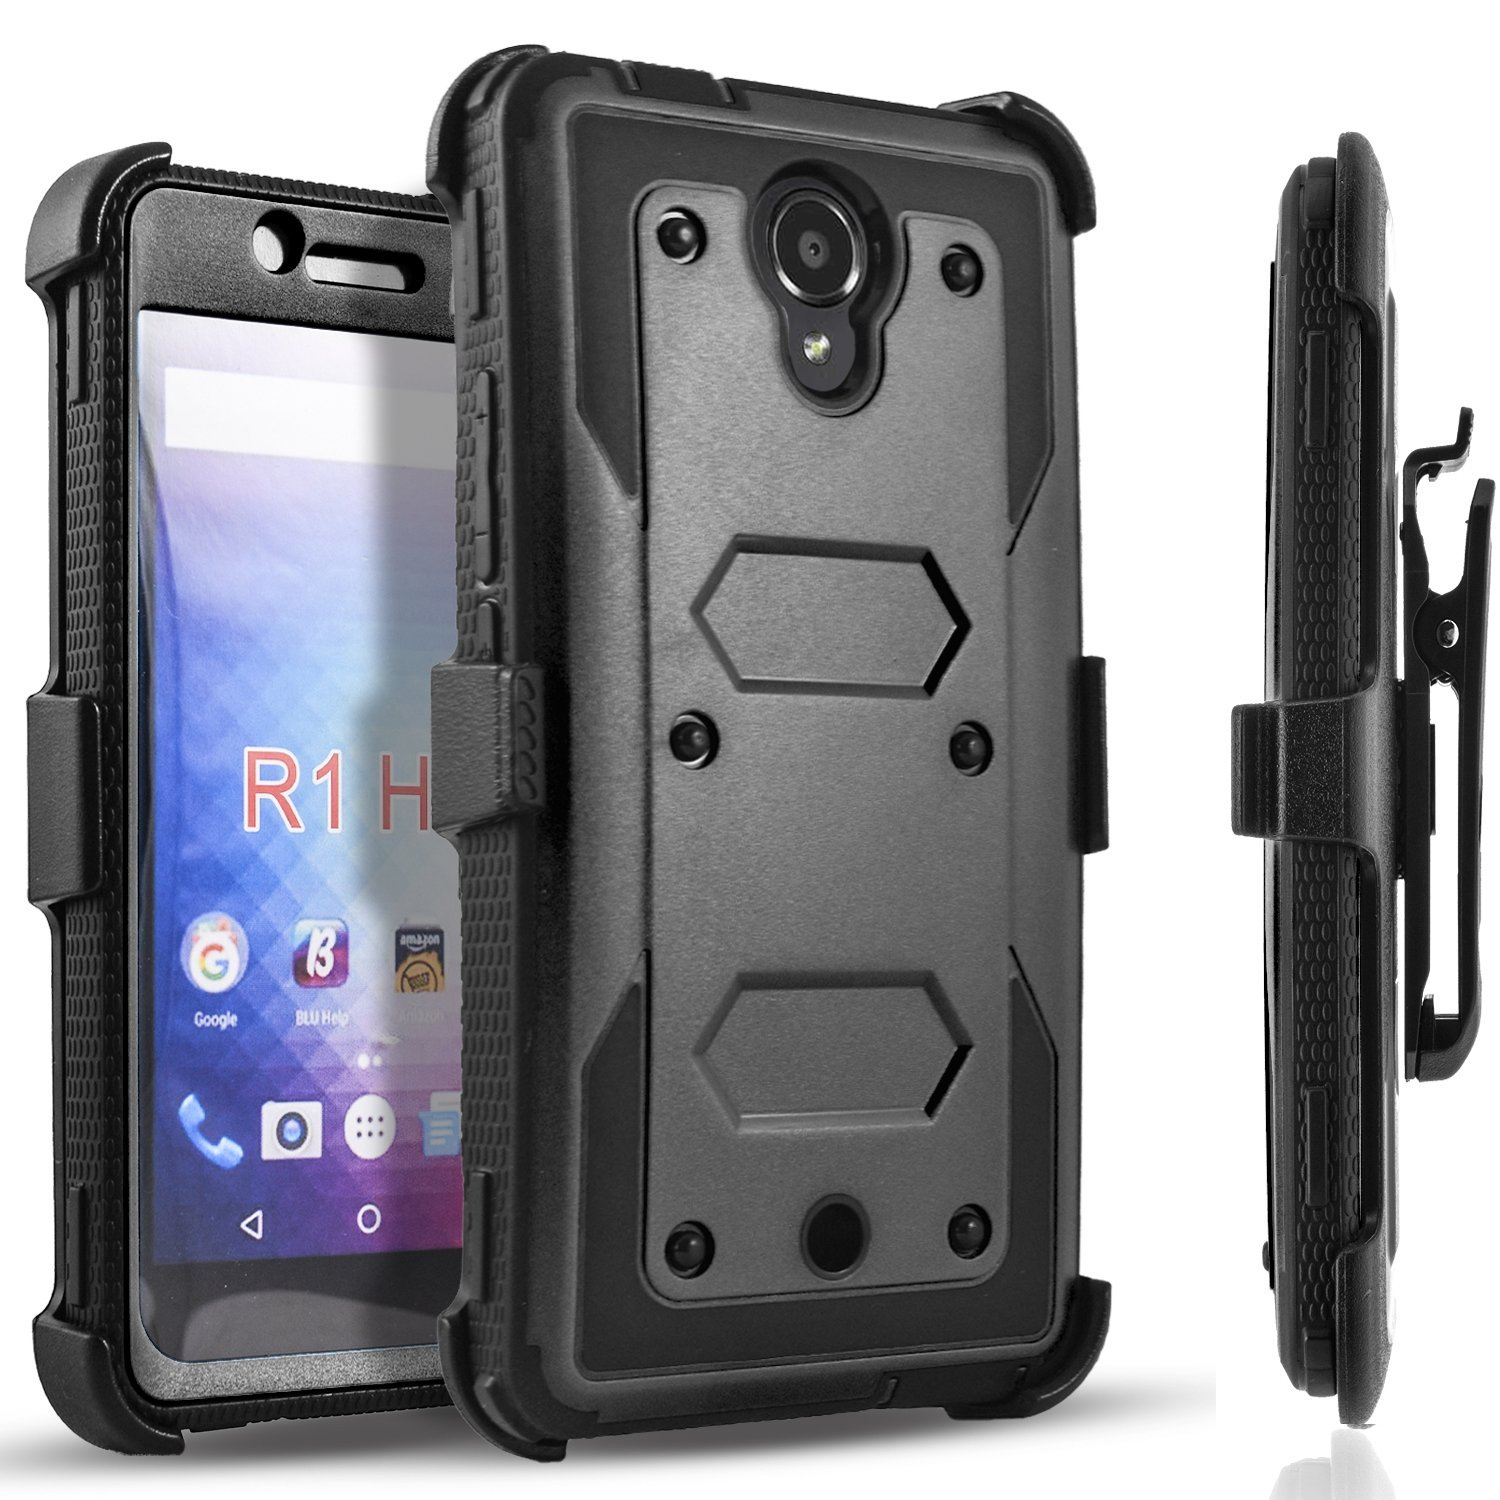 Galaxy S6 Edge Plus Case, [SUPER GUARD] Dual Layer Protection Holster Locking Belt Clip+Circle(TM) Stylus Touch Screen Pen (Black)